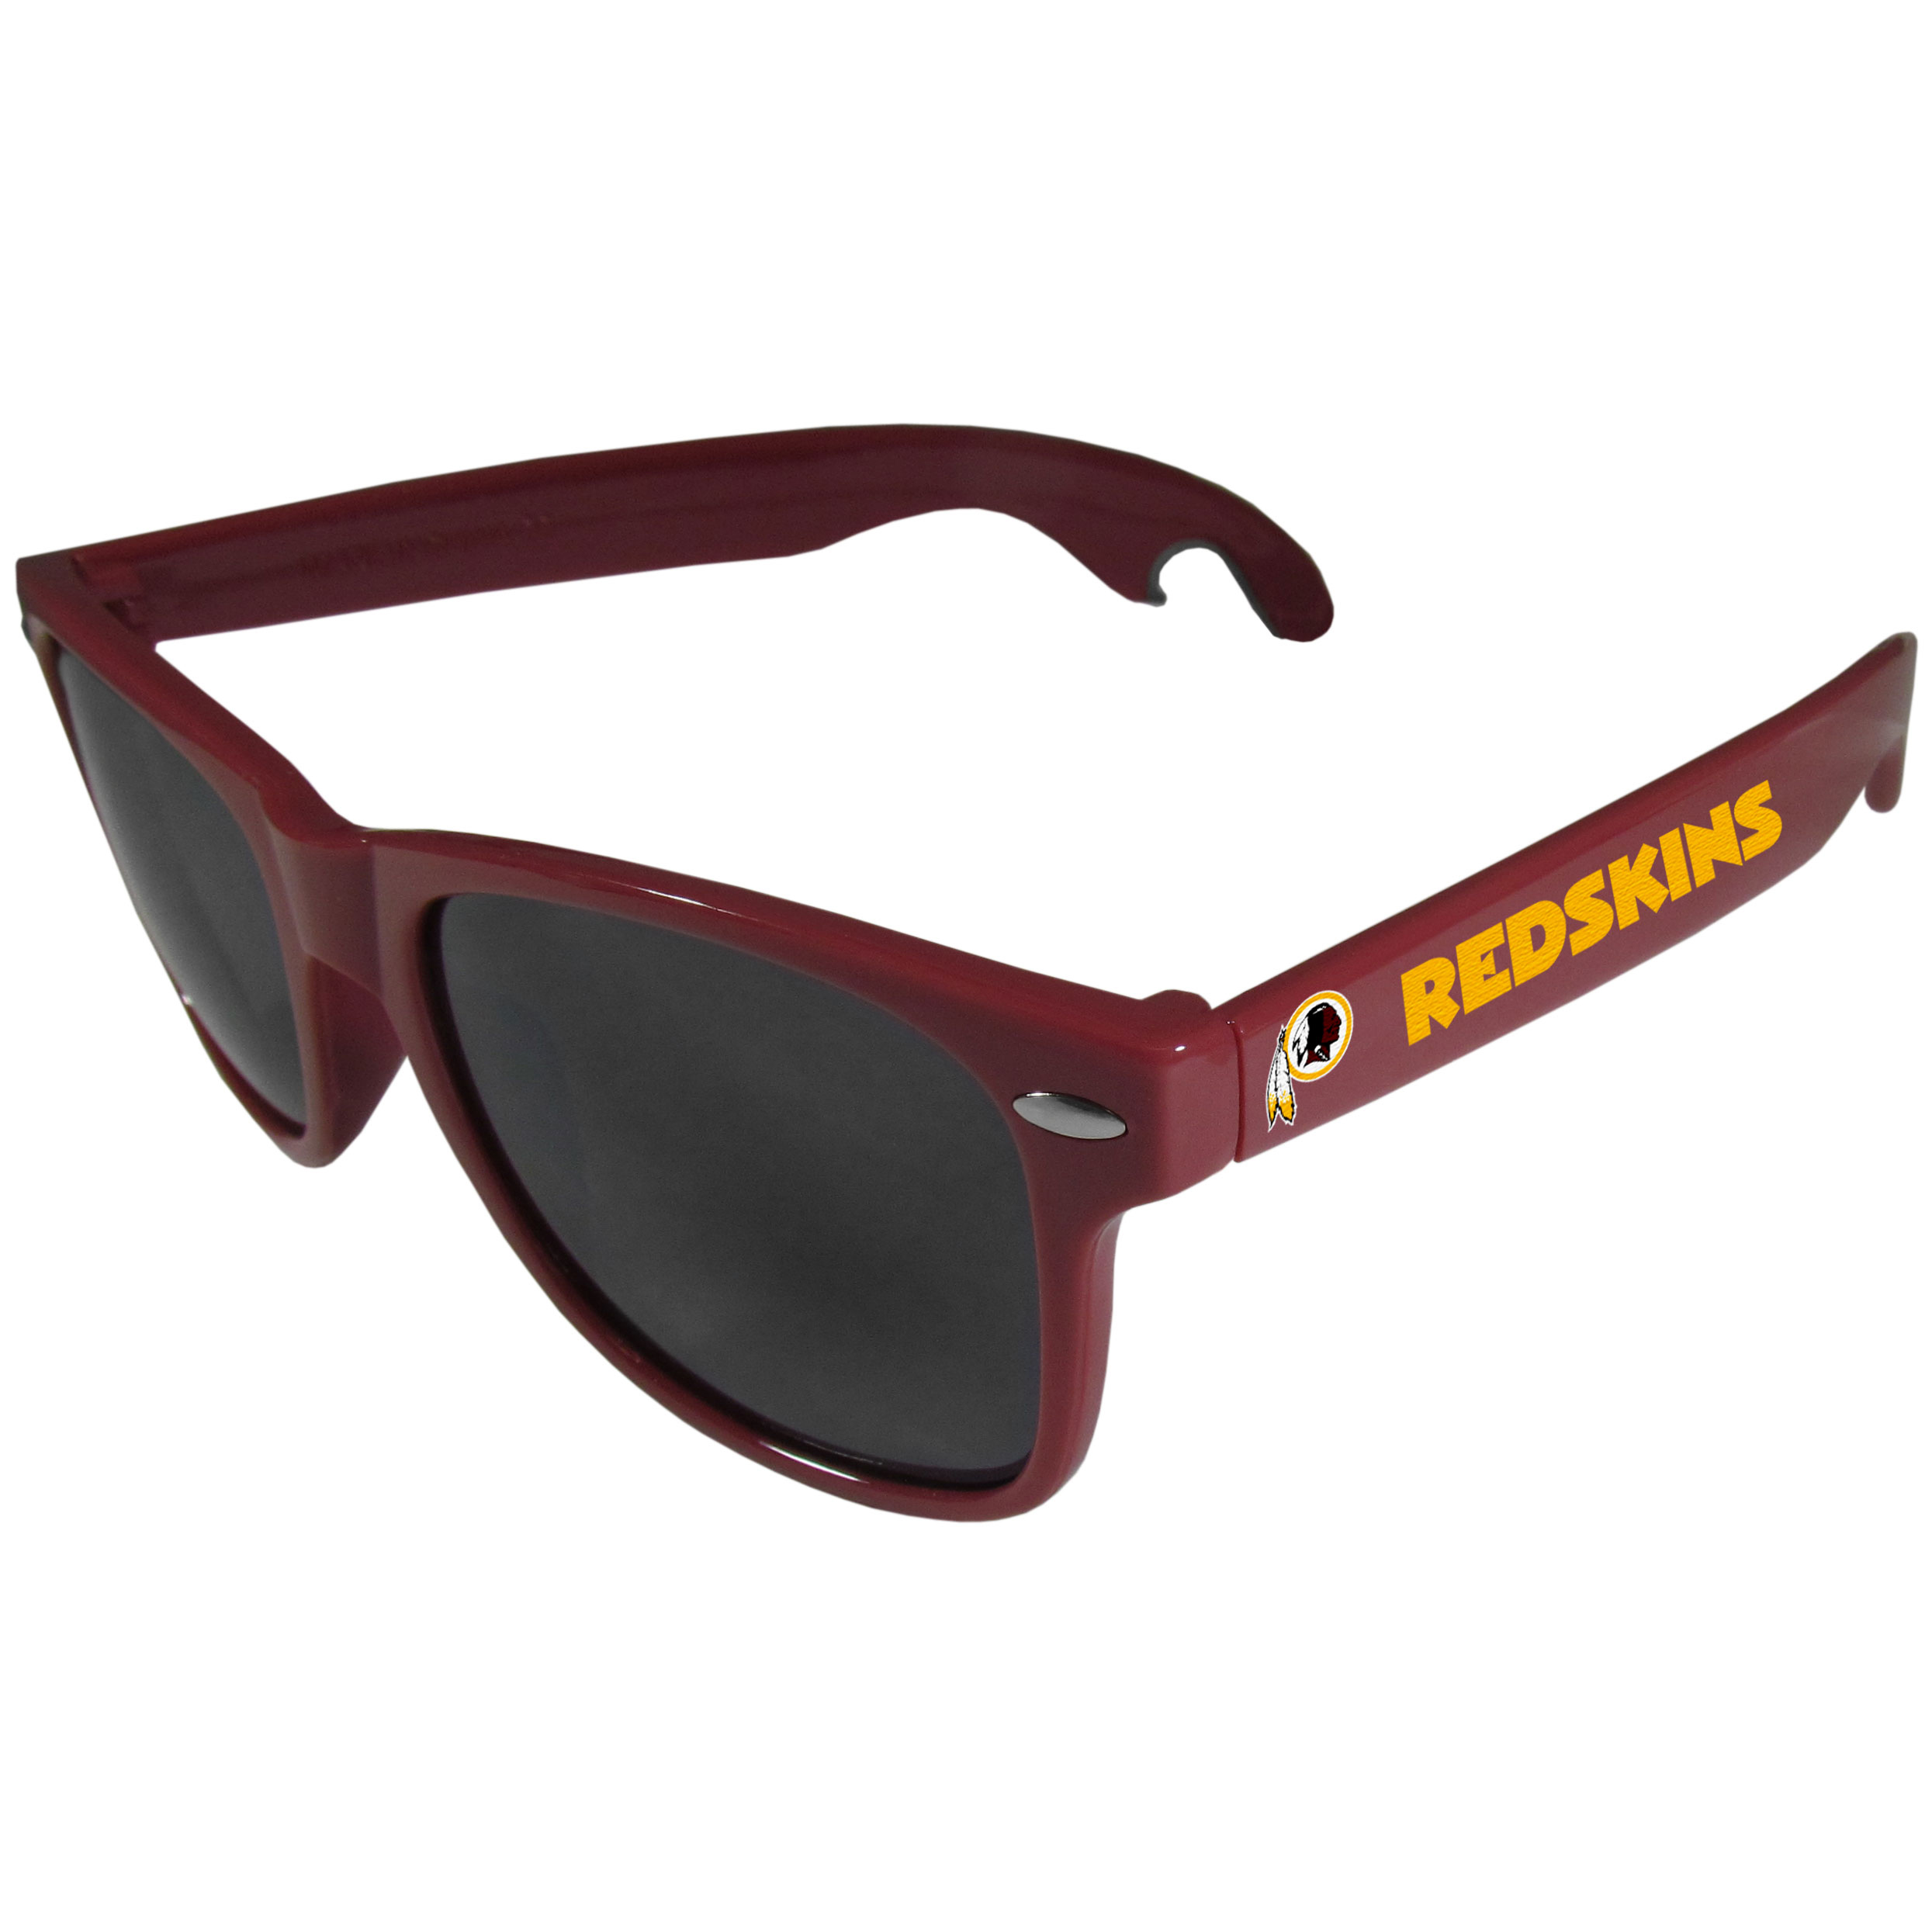 Washington Redskins Beachfarer Bottle Opener Sunglasses, Maroon - Seriously, these sunglasses open bottles! Keep the party going with these amazing Washington Redskins bottle opener sunglasses. The stylish retro frames feature team designs on the arms and functional bottle openers on the end of the arms. Whether you are at the beach or having a backyard BBQ on game day, these shades will keep your eyes protected with 100% UVA/UVB protection and keep you hydrated with the handy bottle opener arms.